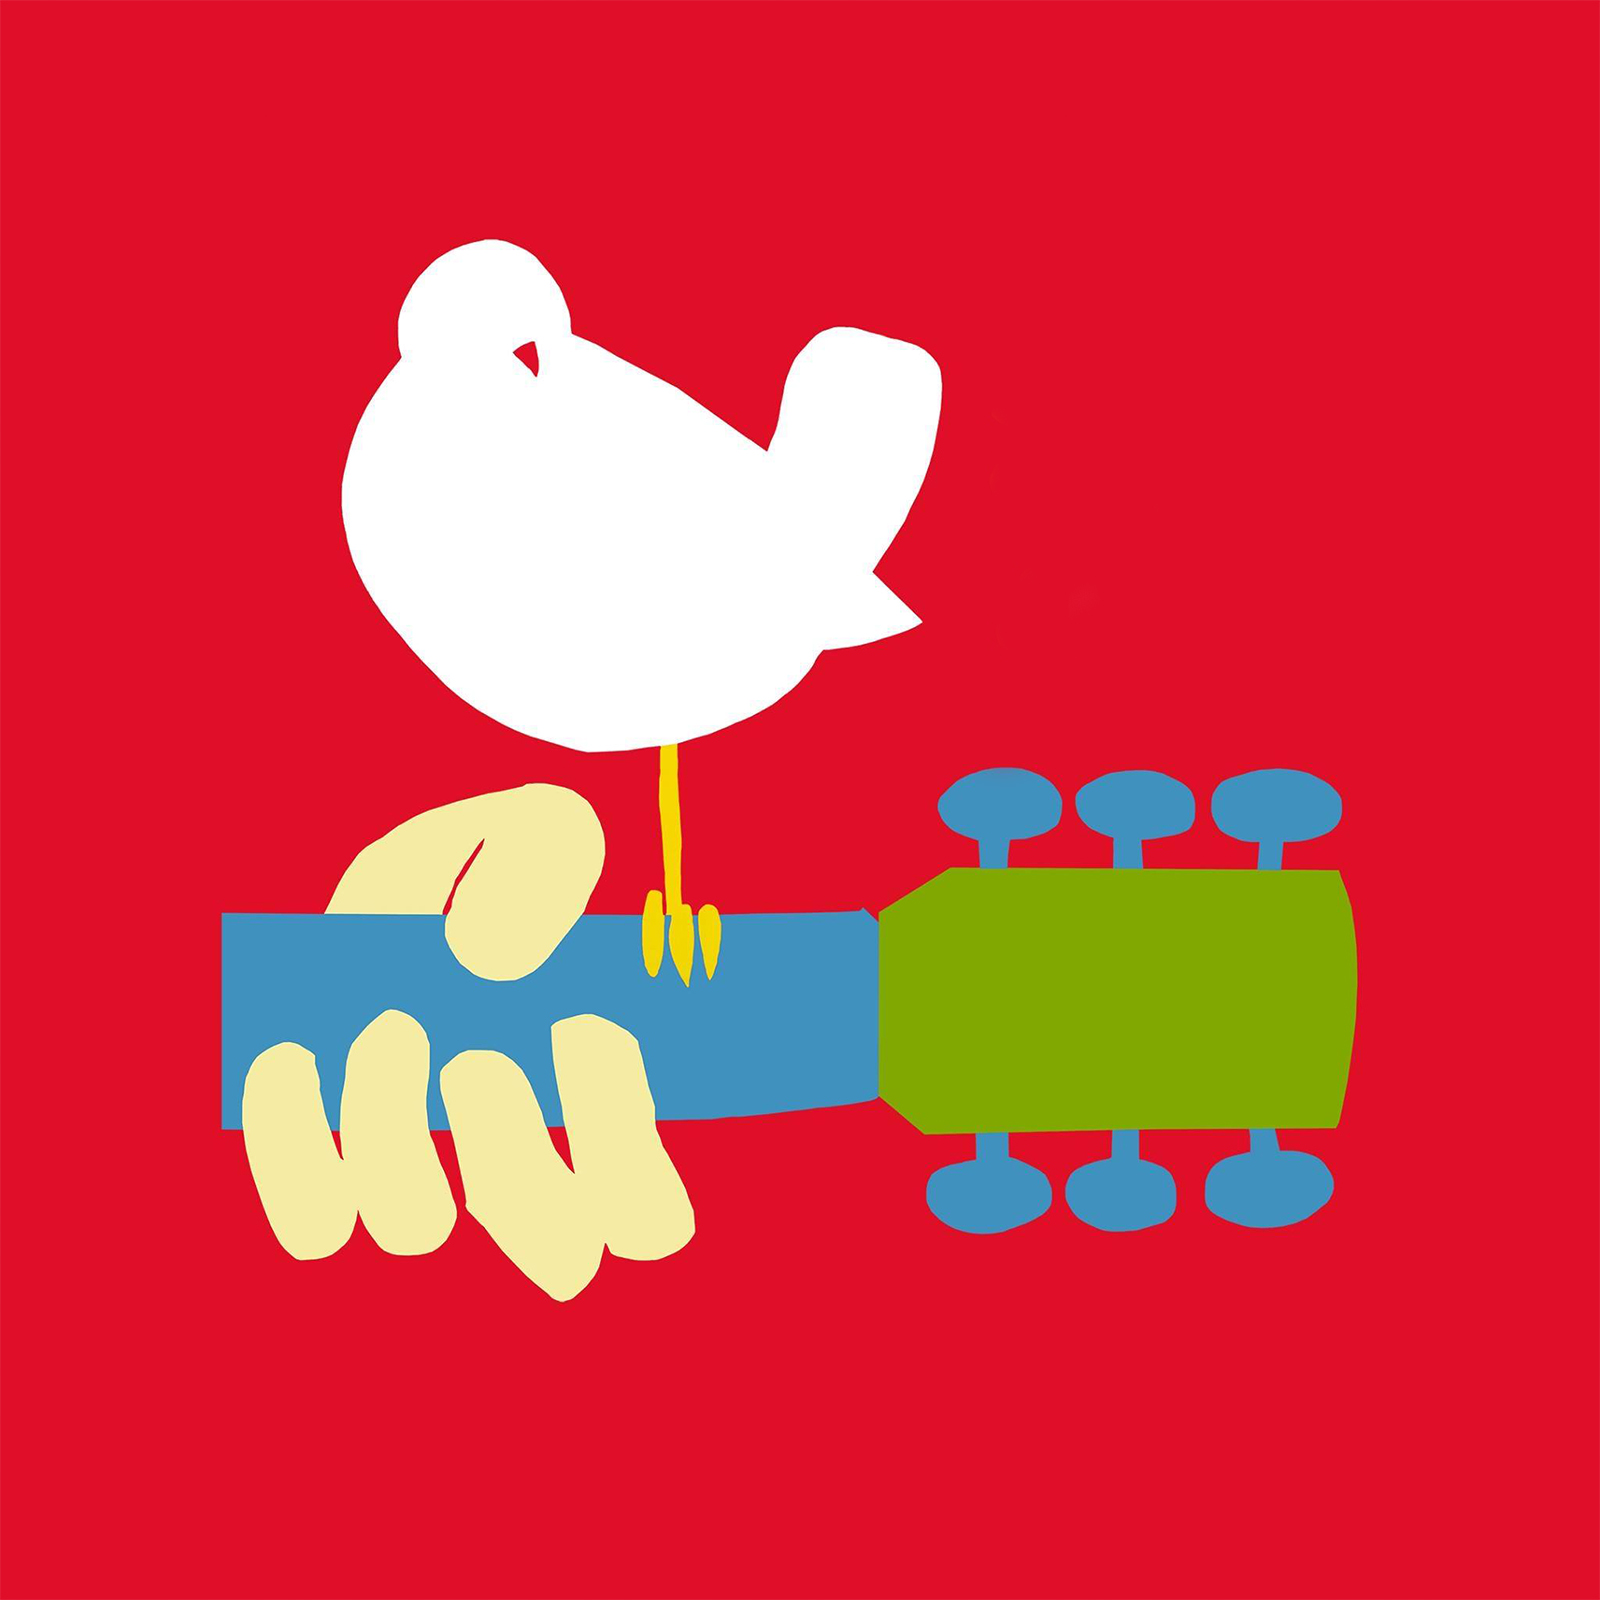 On Woodstock's 51st birthday we acknowledge a few organizations striving to affect change for the better in our communities!